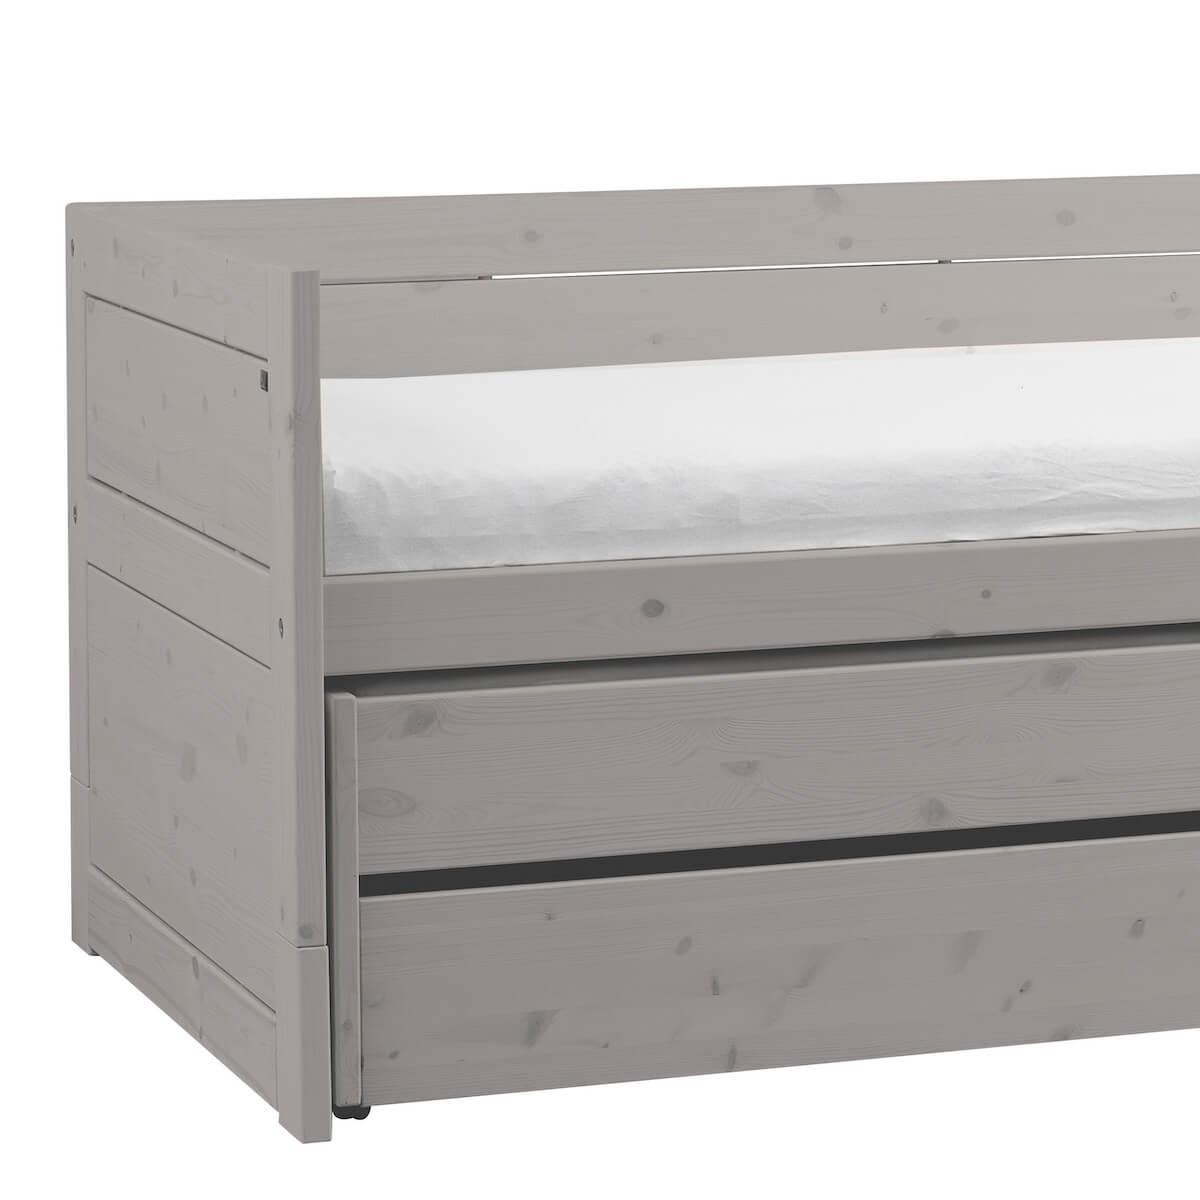 Cama cabina 90x200cm nido-2 cajones Lifetime grey washed